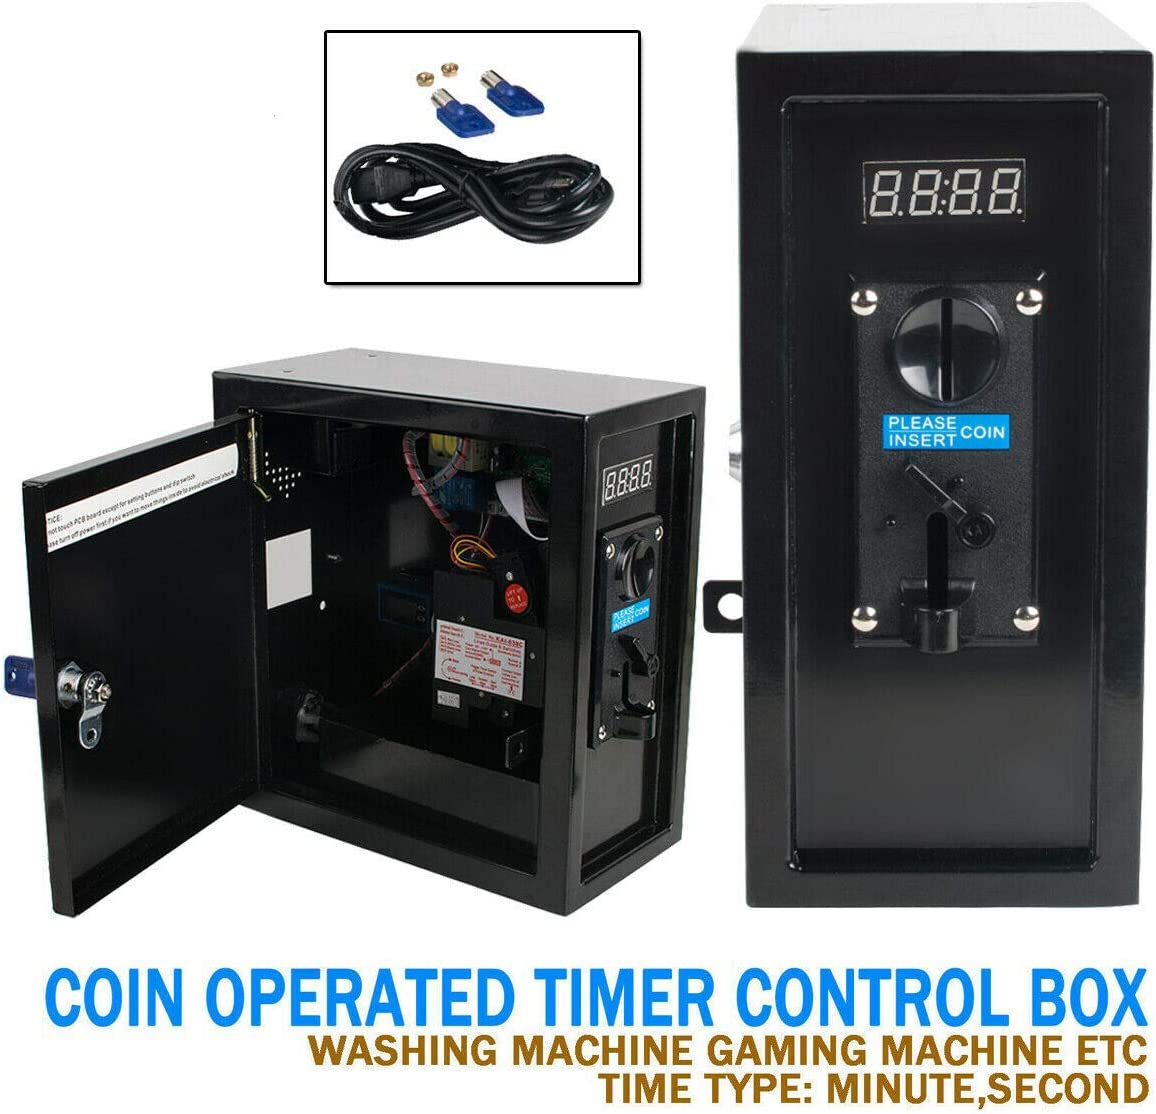 Coin Operated Timer 2 in 1 Time Control Box Electronic Device Coin Selector Acceptor Timer Power Supply Box with Multi Coin Acceptor for Washing Machine, Massage Chair TV 110V(Shipping from USA)